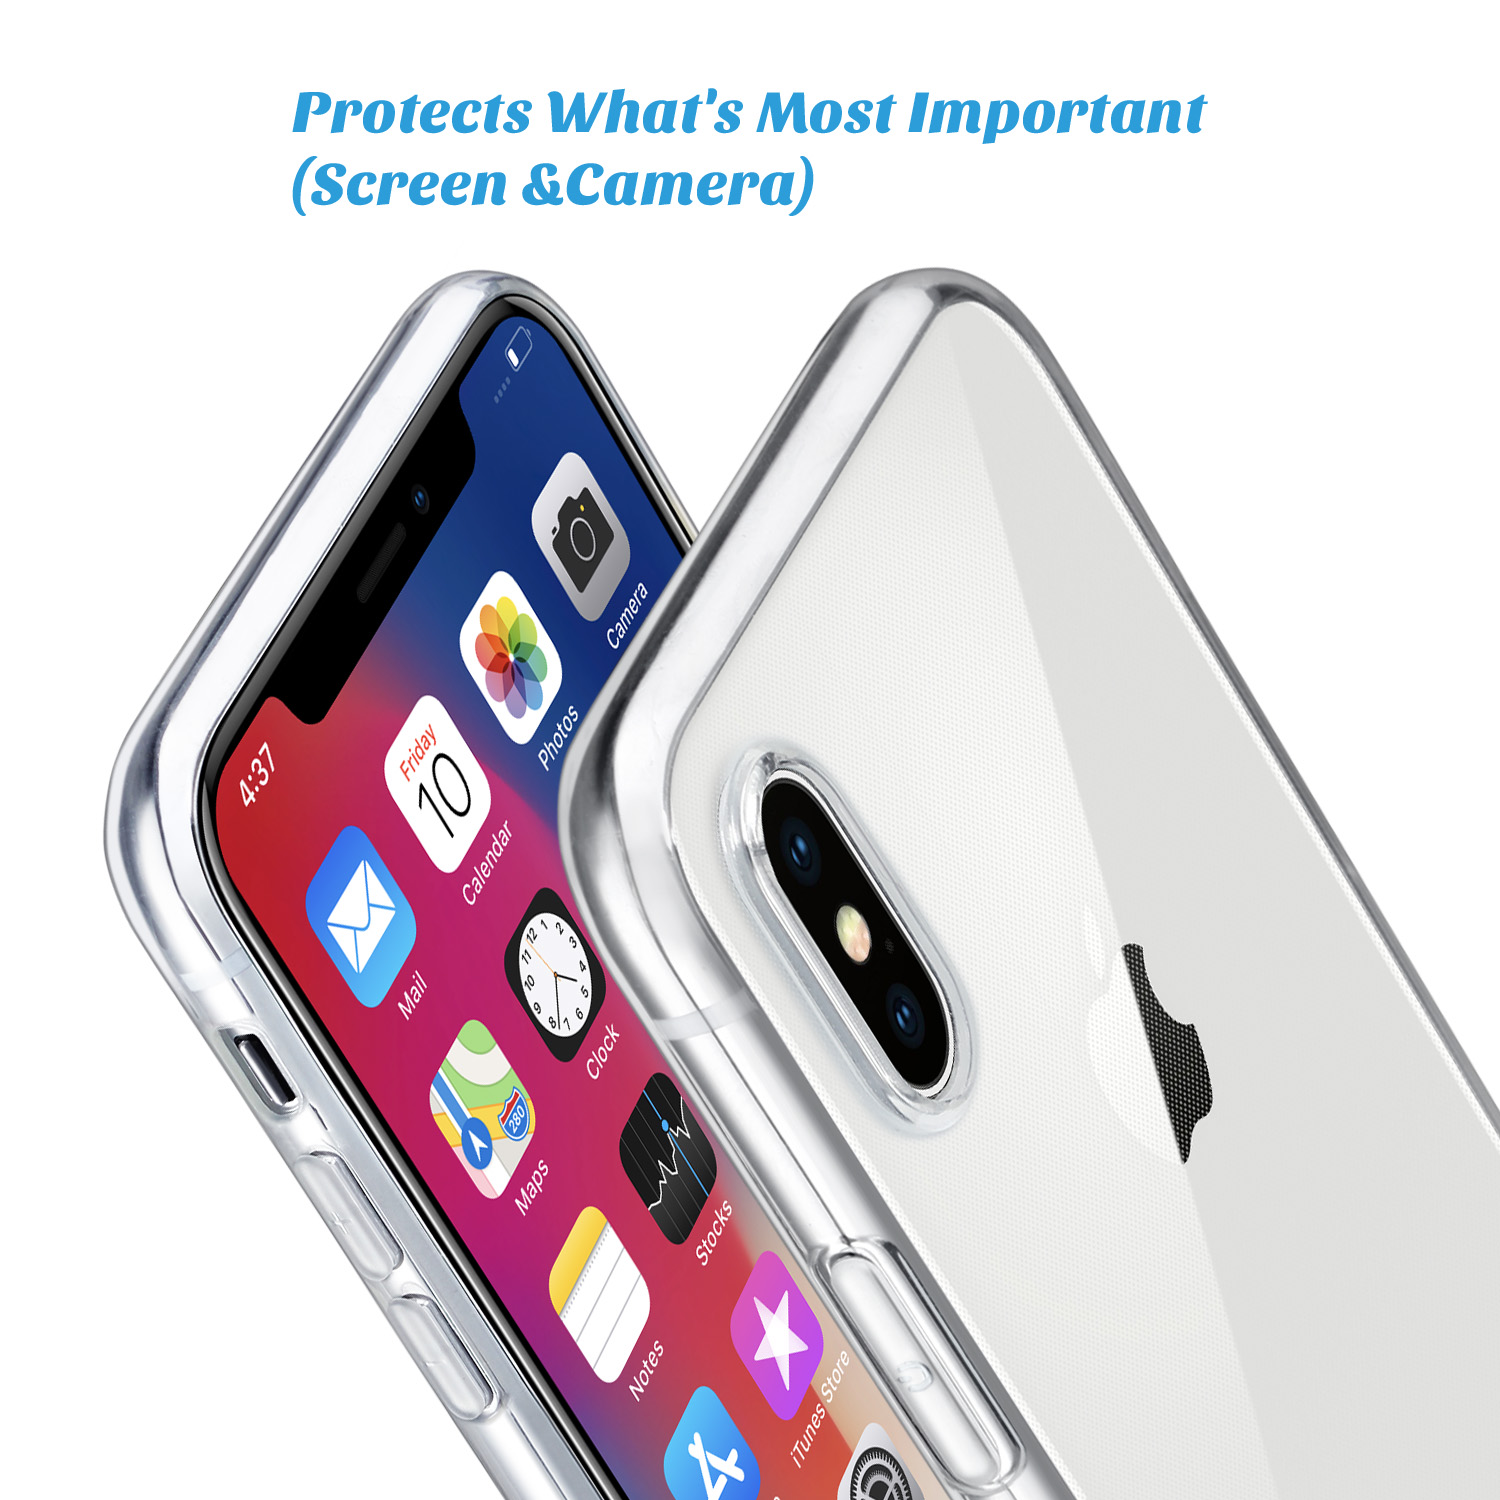 "HTB1tCg5ngvD8KJjSsplq6yIEFXaQ For iPhone X Case, WEFOR Slim Clear Soft TPU Cover Support Wireless Charging for Apple 5.8"" iPhone X /iPhone 10 (2017 Release)"